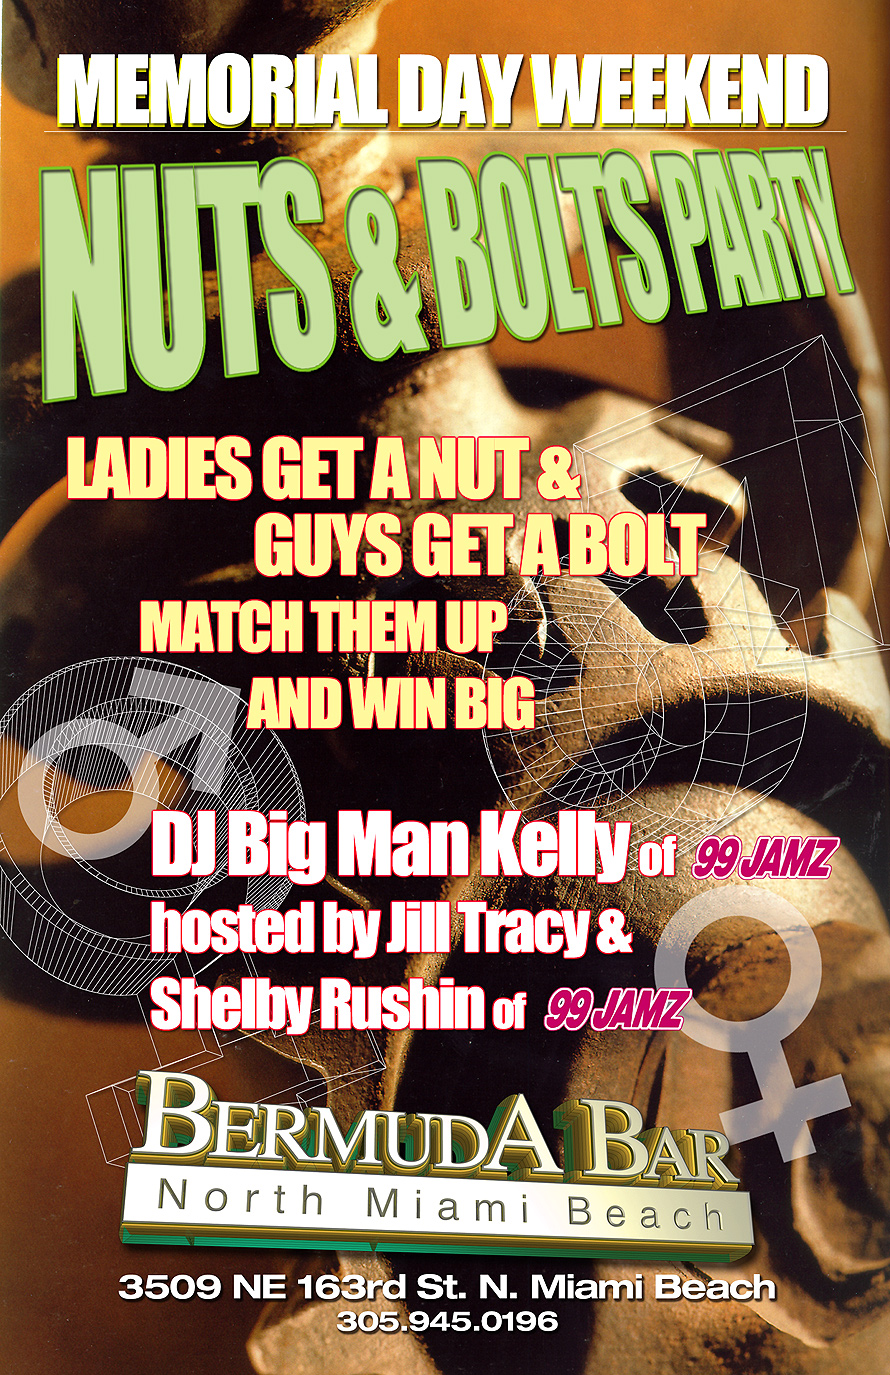 Nuts and Bolts Party at Bermuda Bar in North Miami Beach